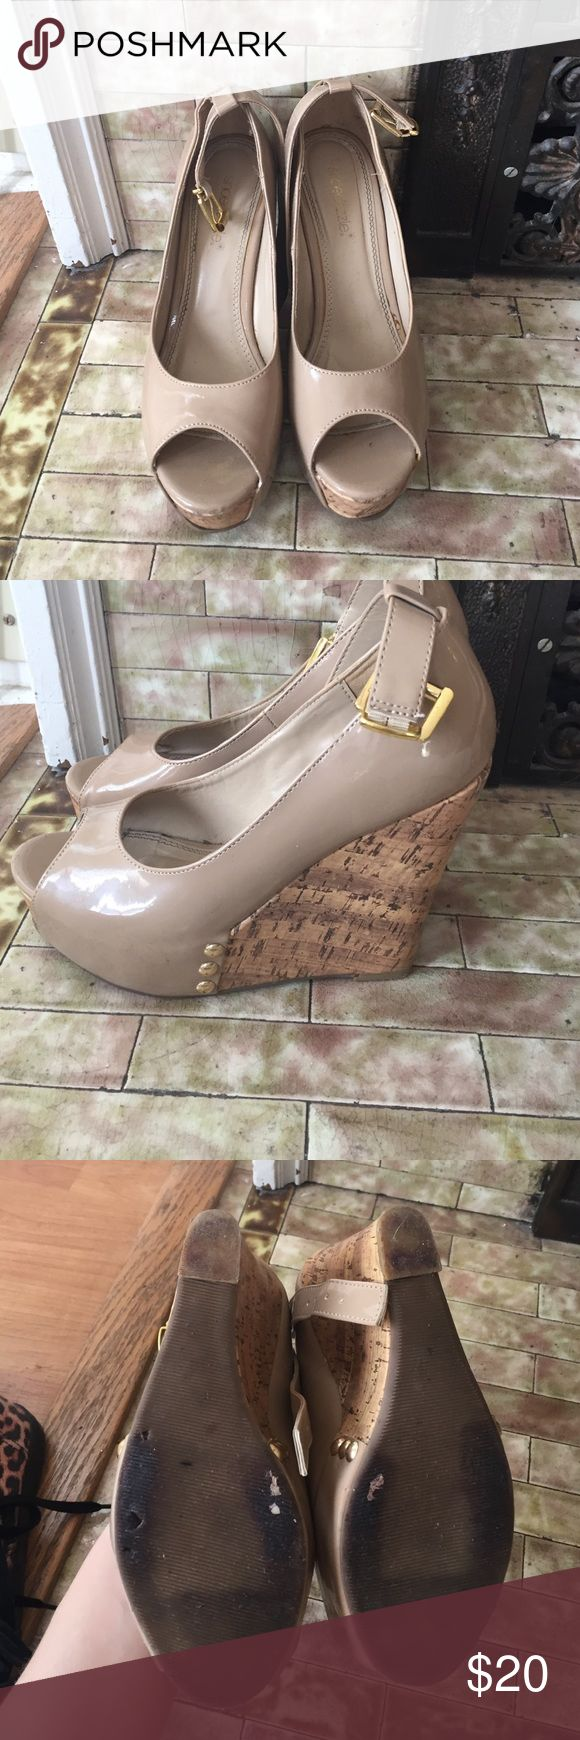 Tan shoedazzle cork shoes Tan shoedazzle cork shoes. Worn once and in great condition. Shoe Dazzle Shoes Heels